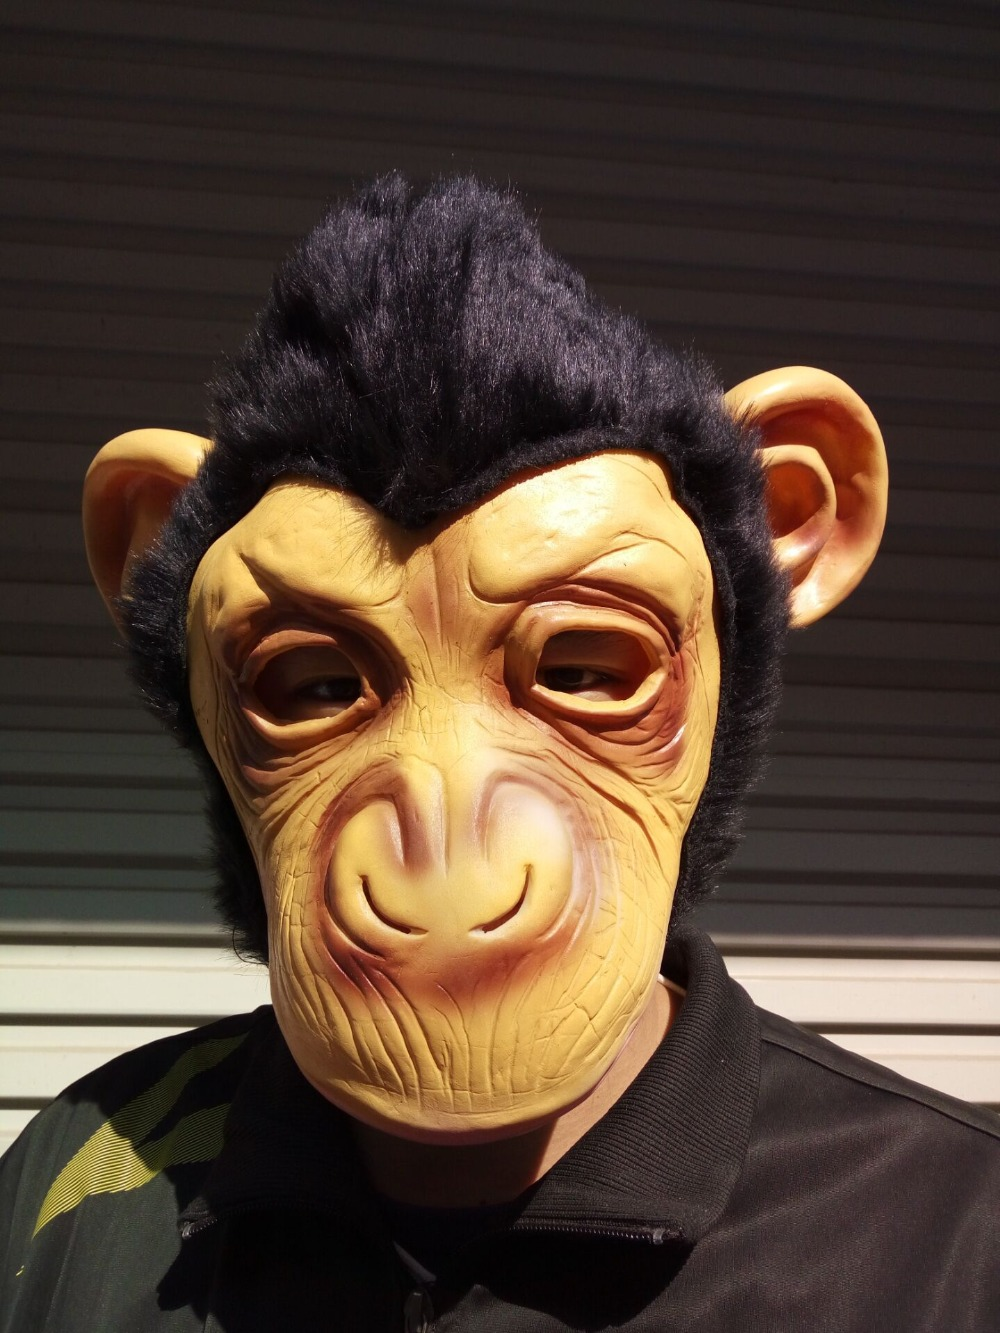 Free Shipping King Kong Gorilla Big Ears Monkey Mask Funny Animal Halloween Masquerade Party Eco Boys Costume Accessories Novelty & Special Use Friendly Latex Full Face Mask Buy One Get One Free